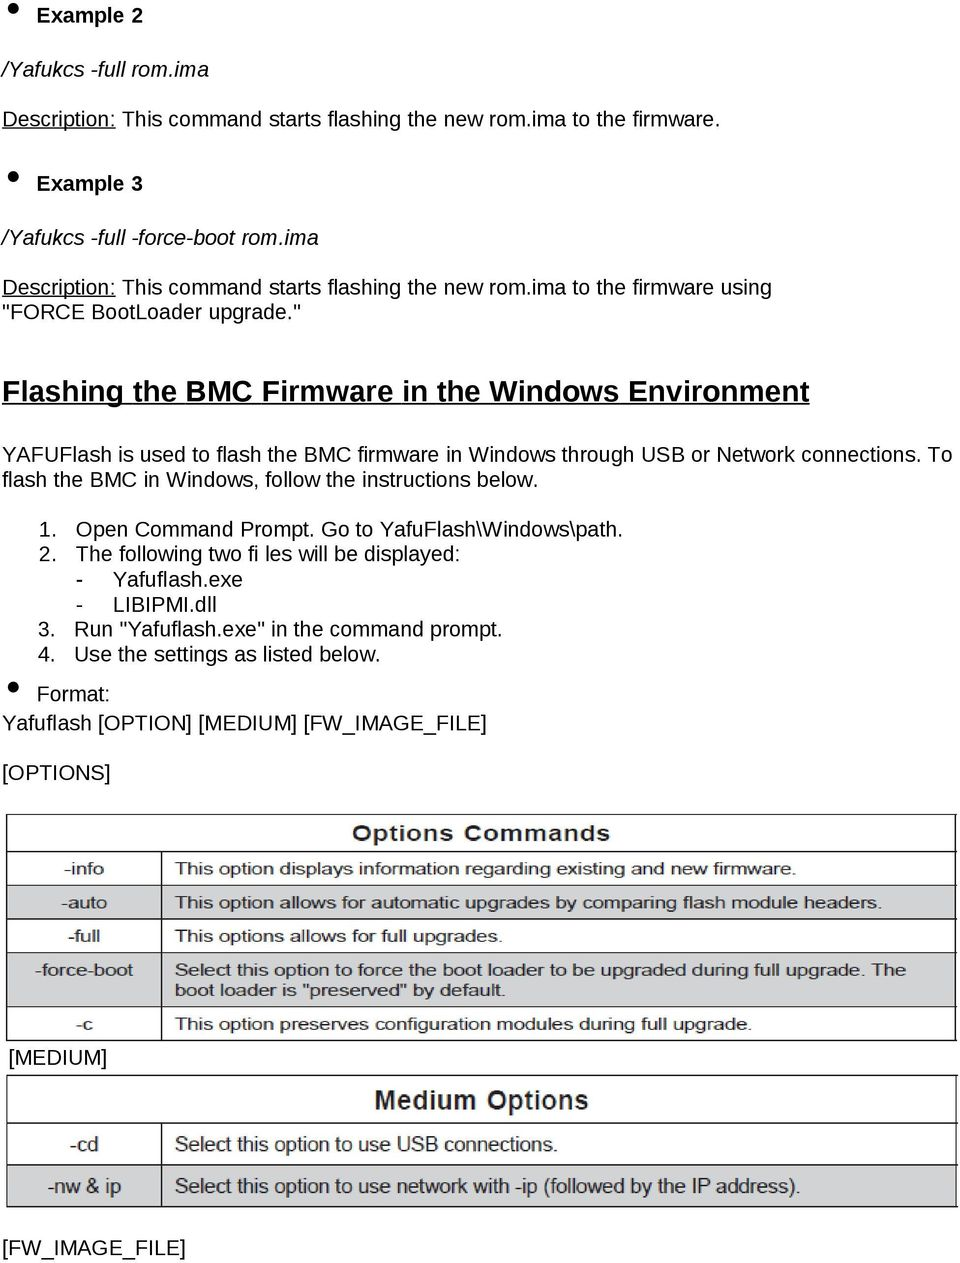 """ Flashing the BMC Firmware in the Windows Environment YAFUFlash is used to flash the BMC firmware in Windows through USB or Network connections."